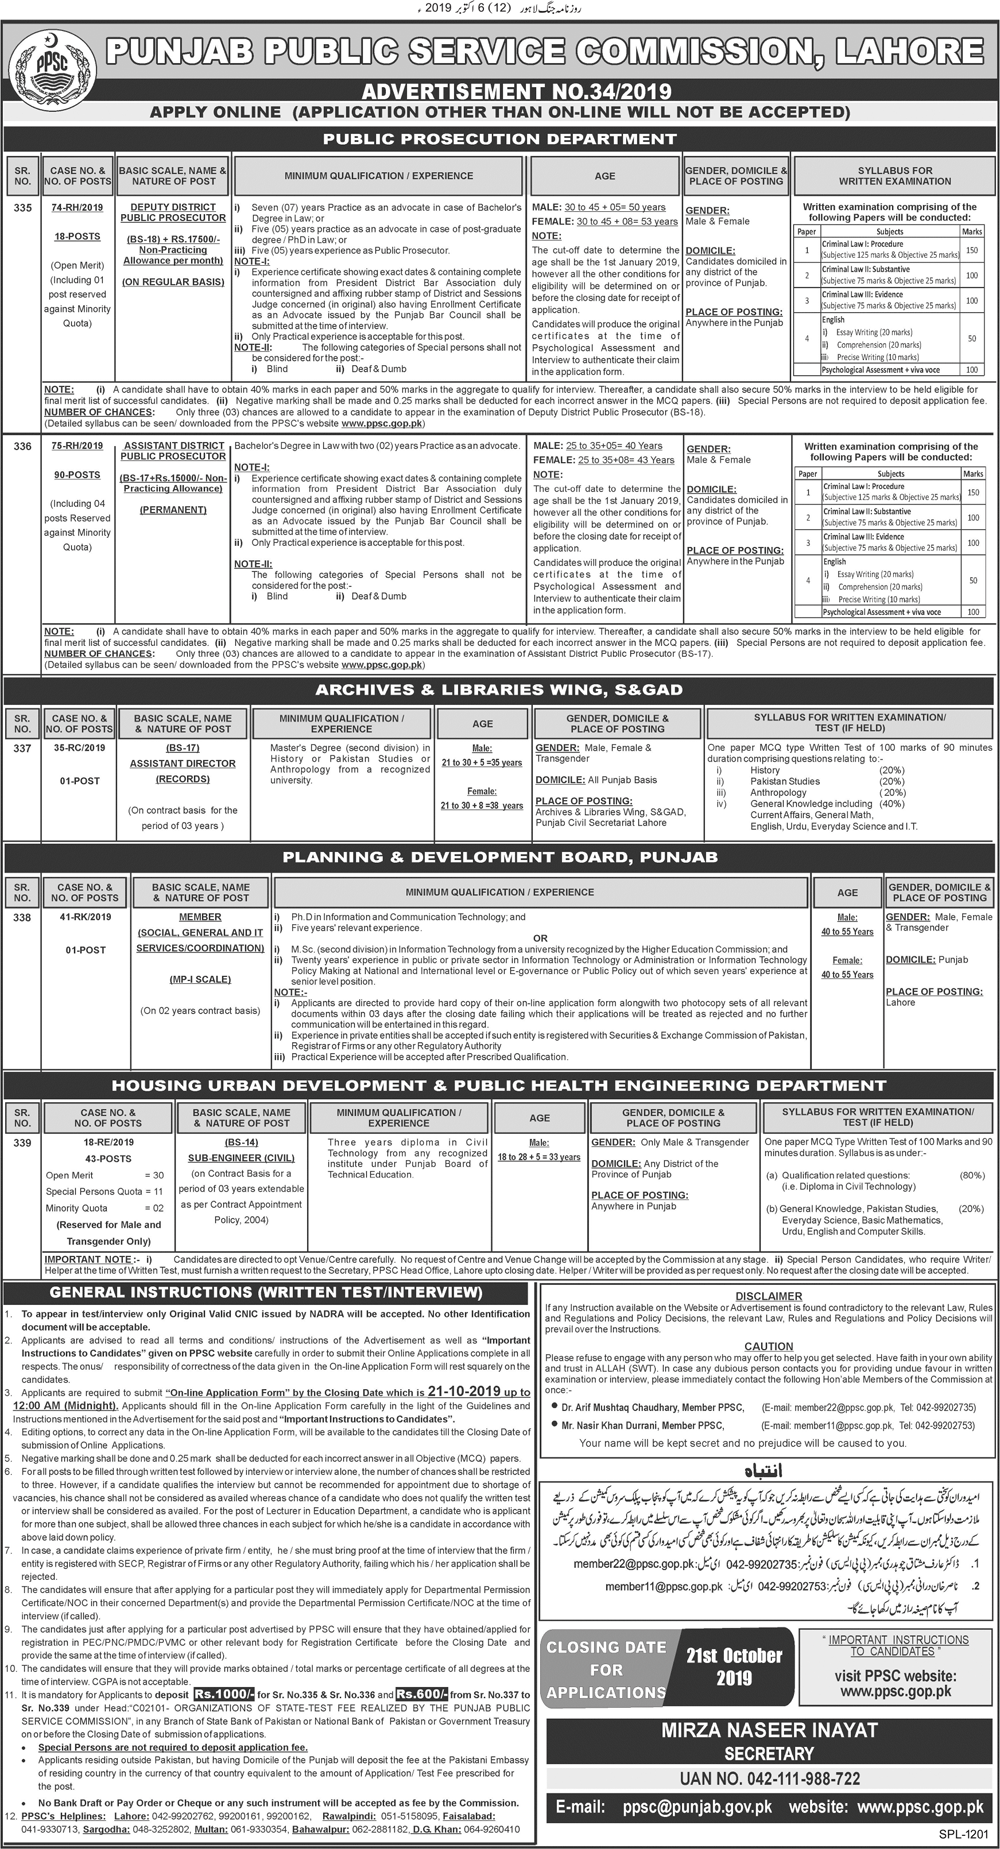 PPSC Punjab Public Service Commission Jobs 2019 Jobs in Pakistan for Male & Female Advertisement No. 342019